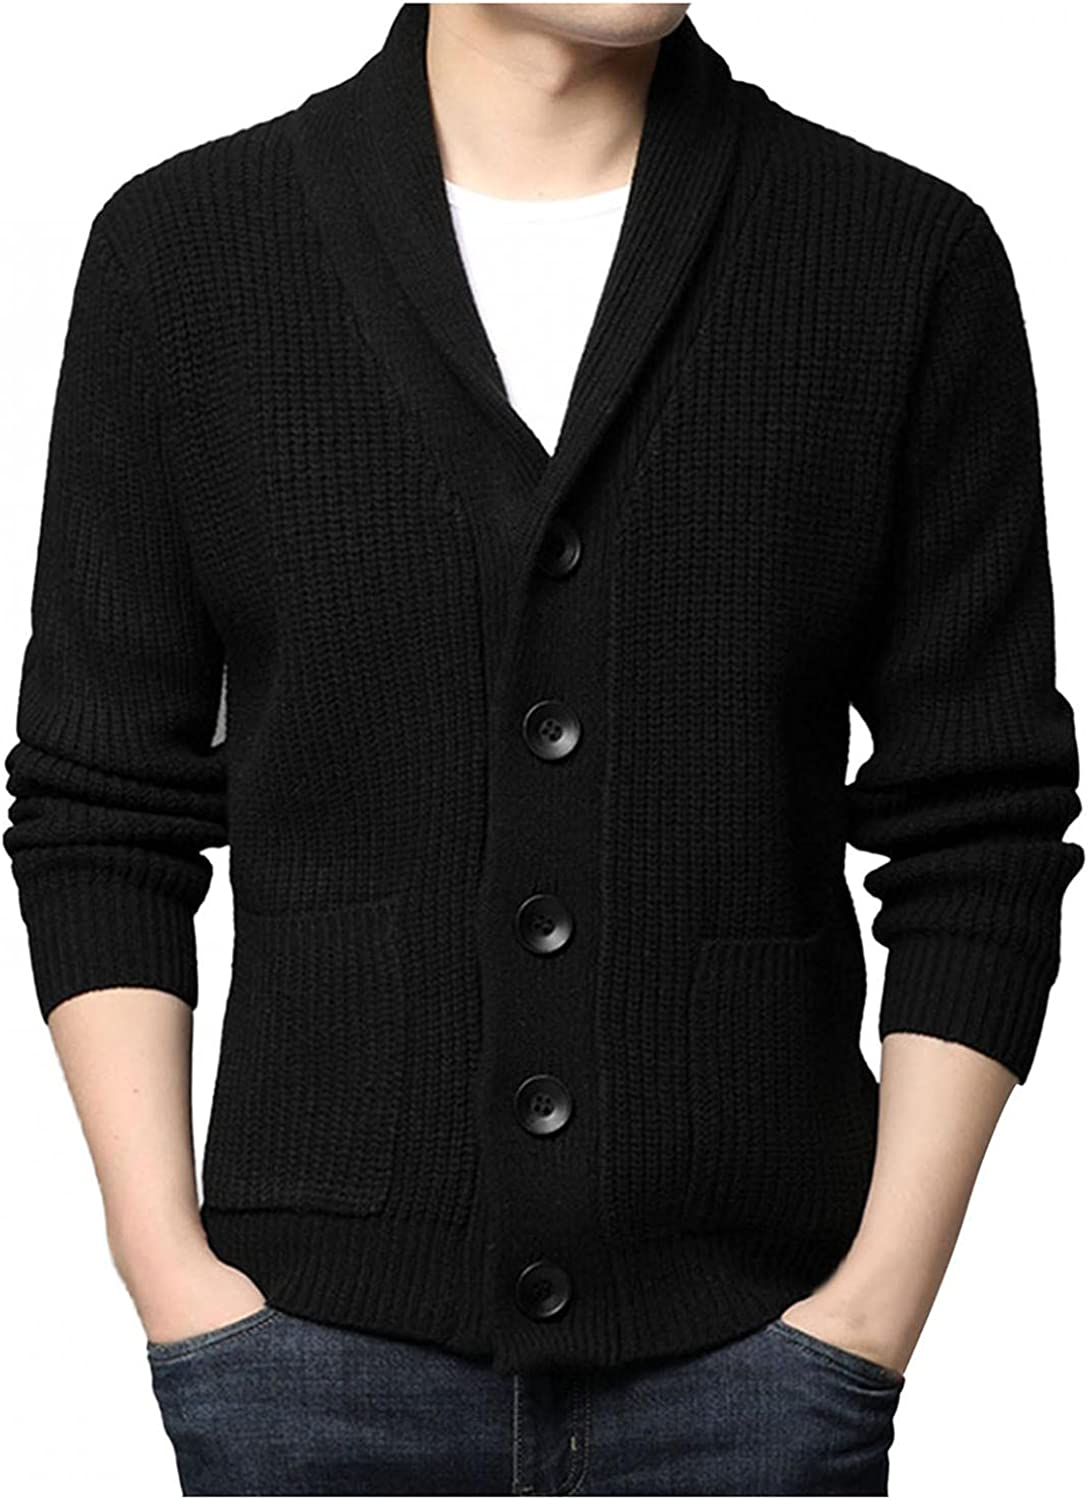 Mens Cardigan, Mens Casual Cardigan Cable Knitted Sweater Solid Color Button Down Relax Fit V-Neck Long Sleeve Coats Pocket